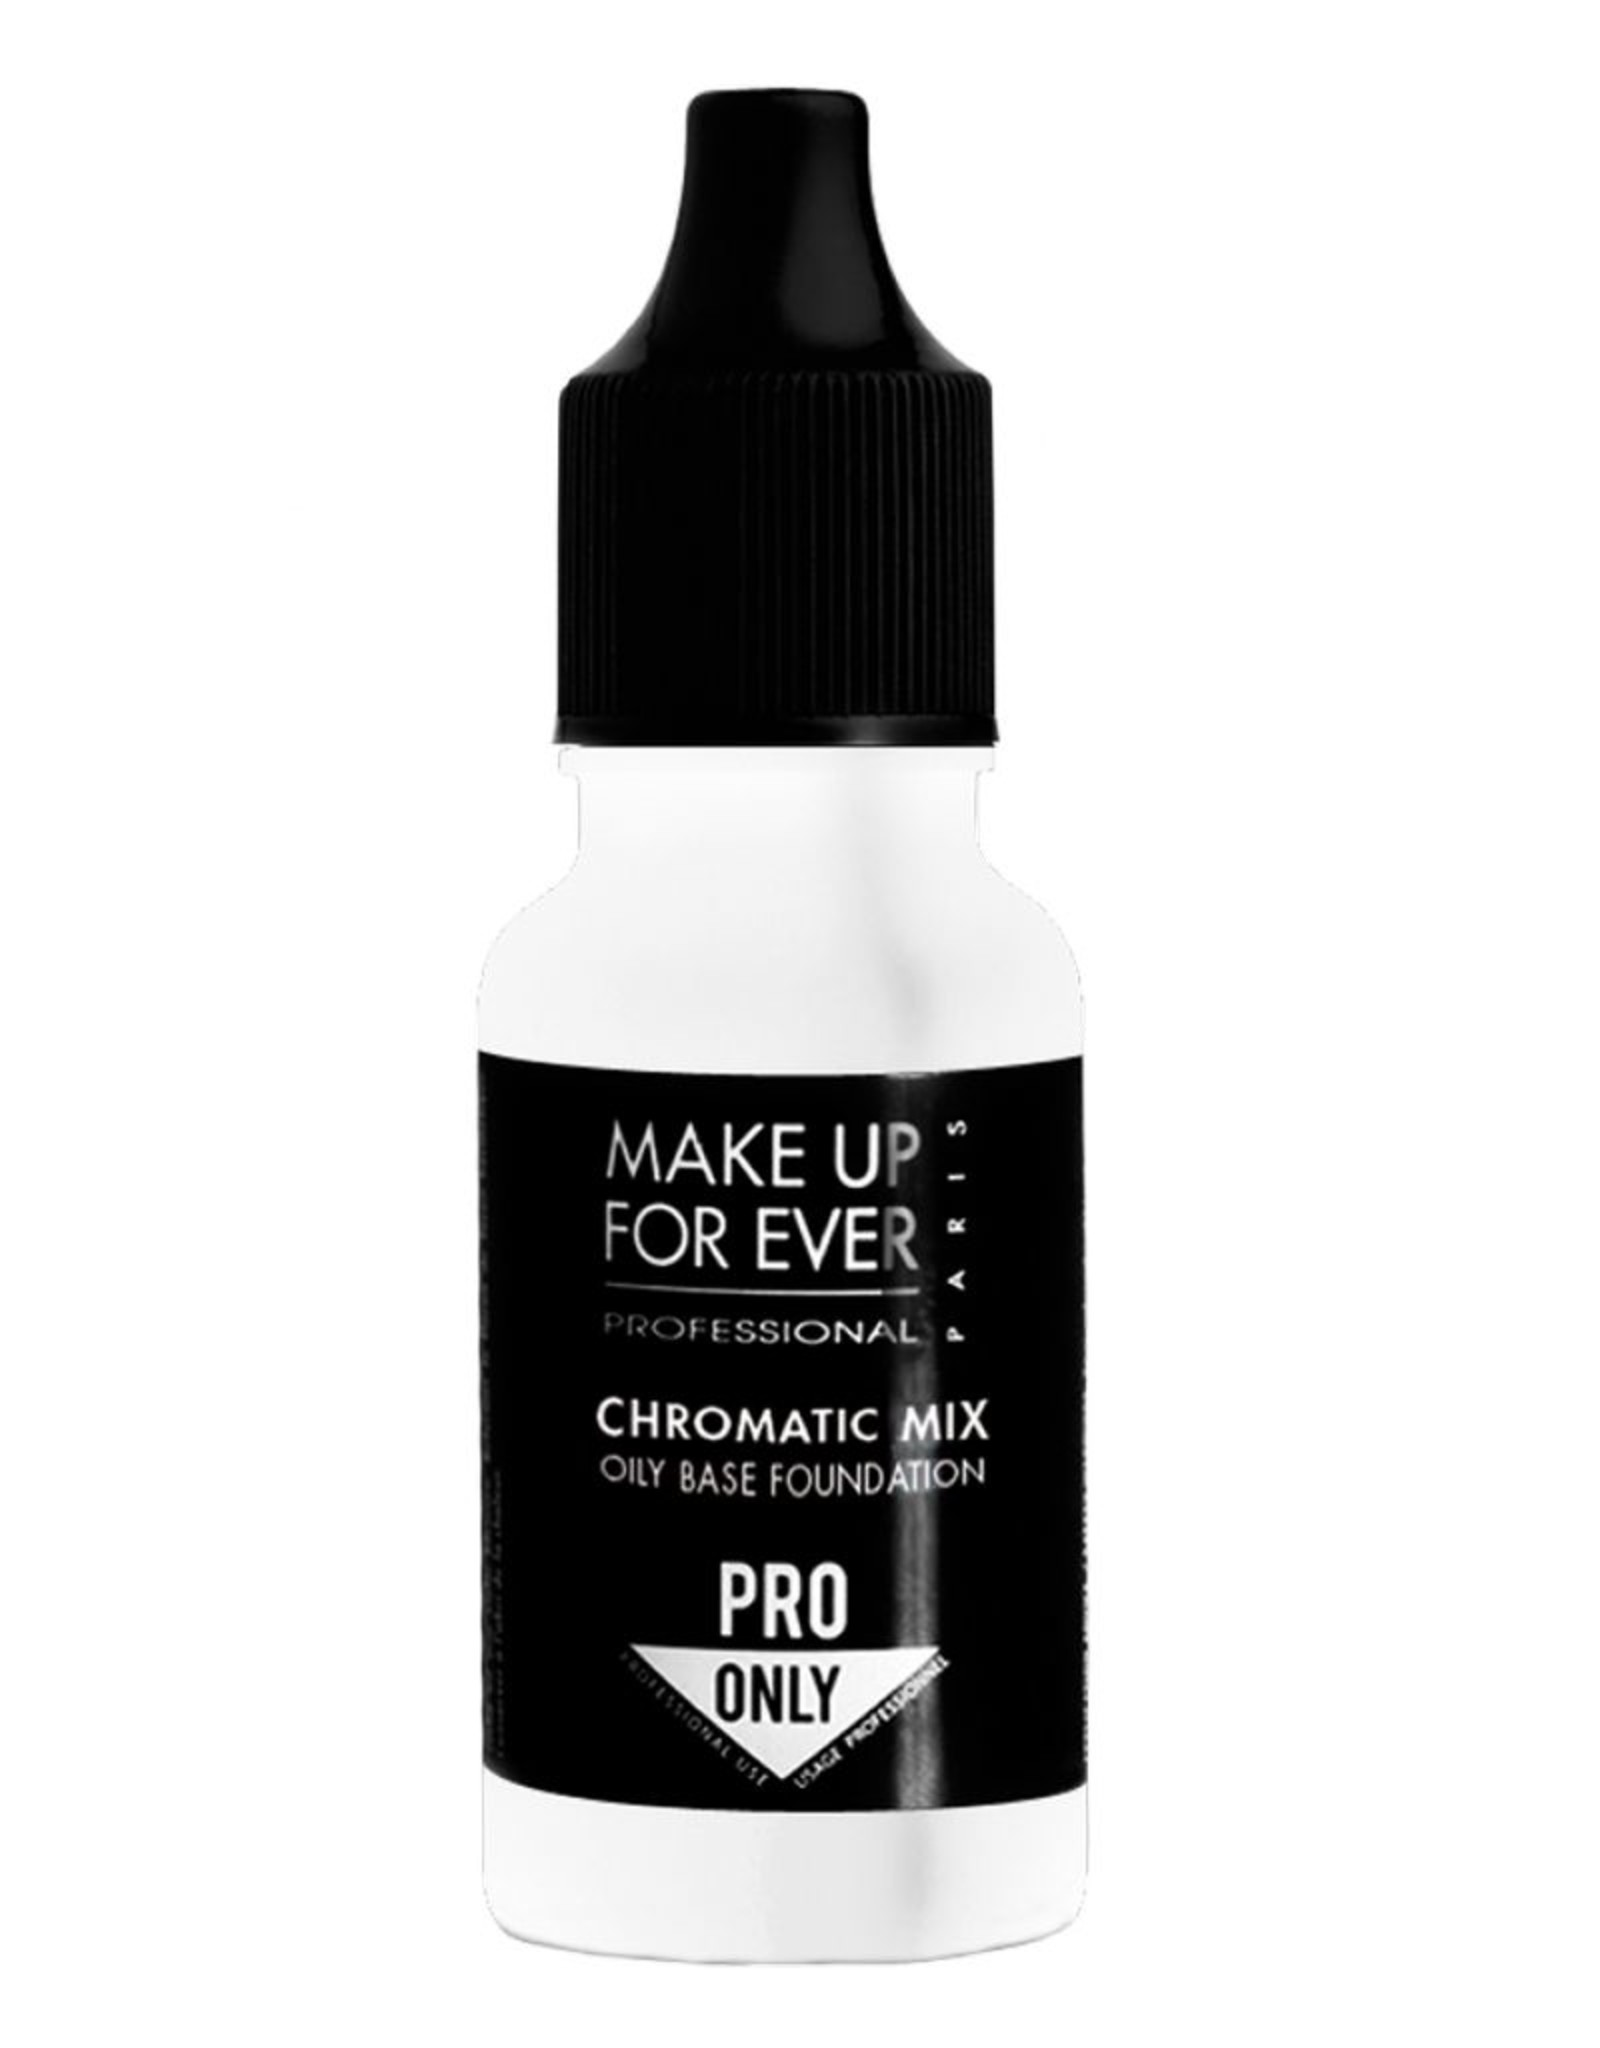 MUFE CHROMATIC MIX 13ML (Base Oil) #11 Blanc / White